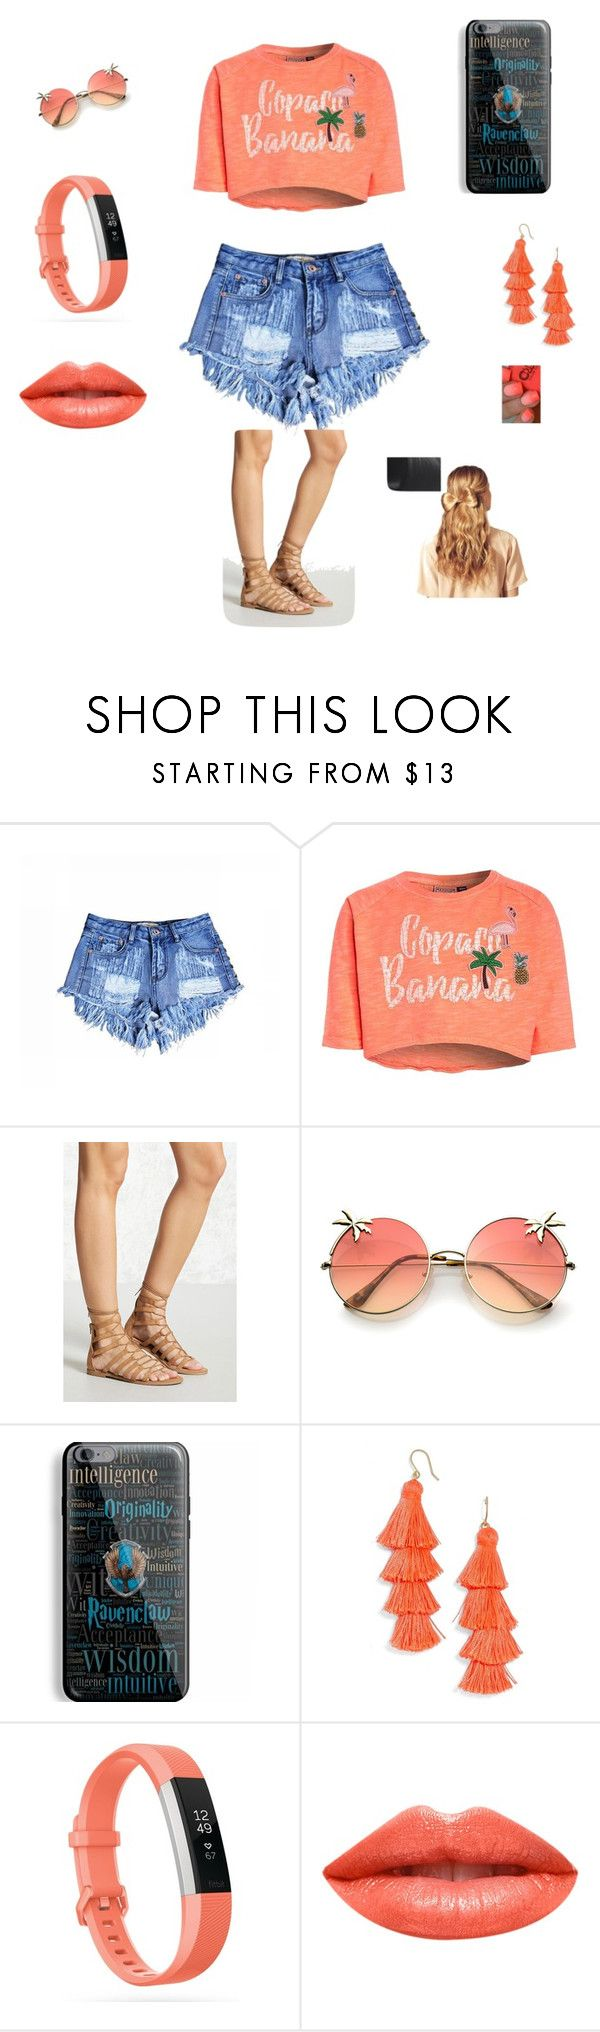 """""""Untitled #15"""" by ciara-vodzak ❤ liked on Polyvore featuring Forever 21, Samsung, BaubleBar, Fitbit, Ardency Inn and Hershesons"""